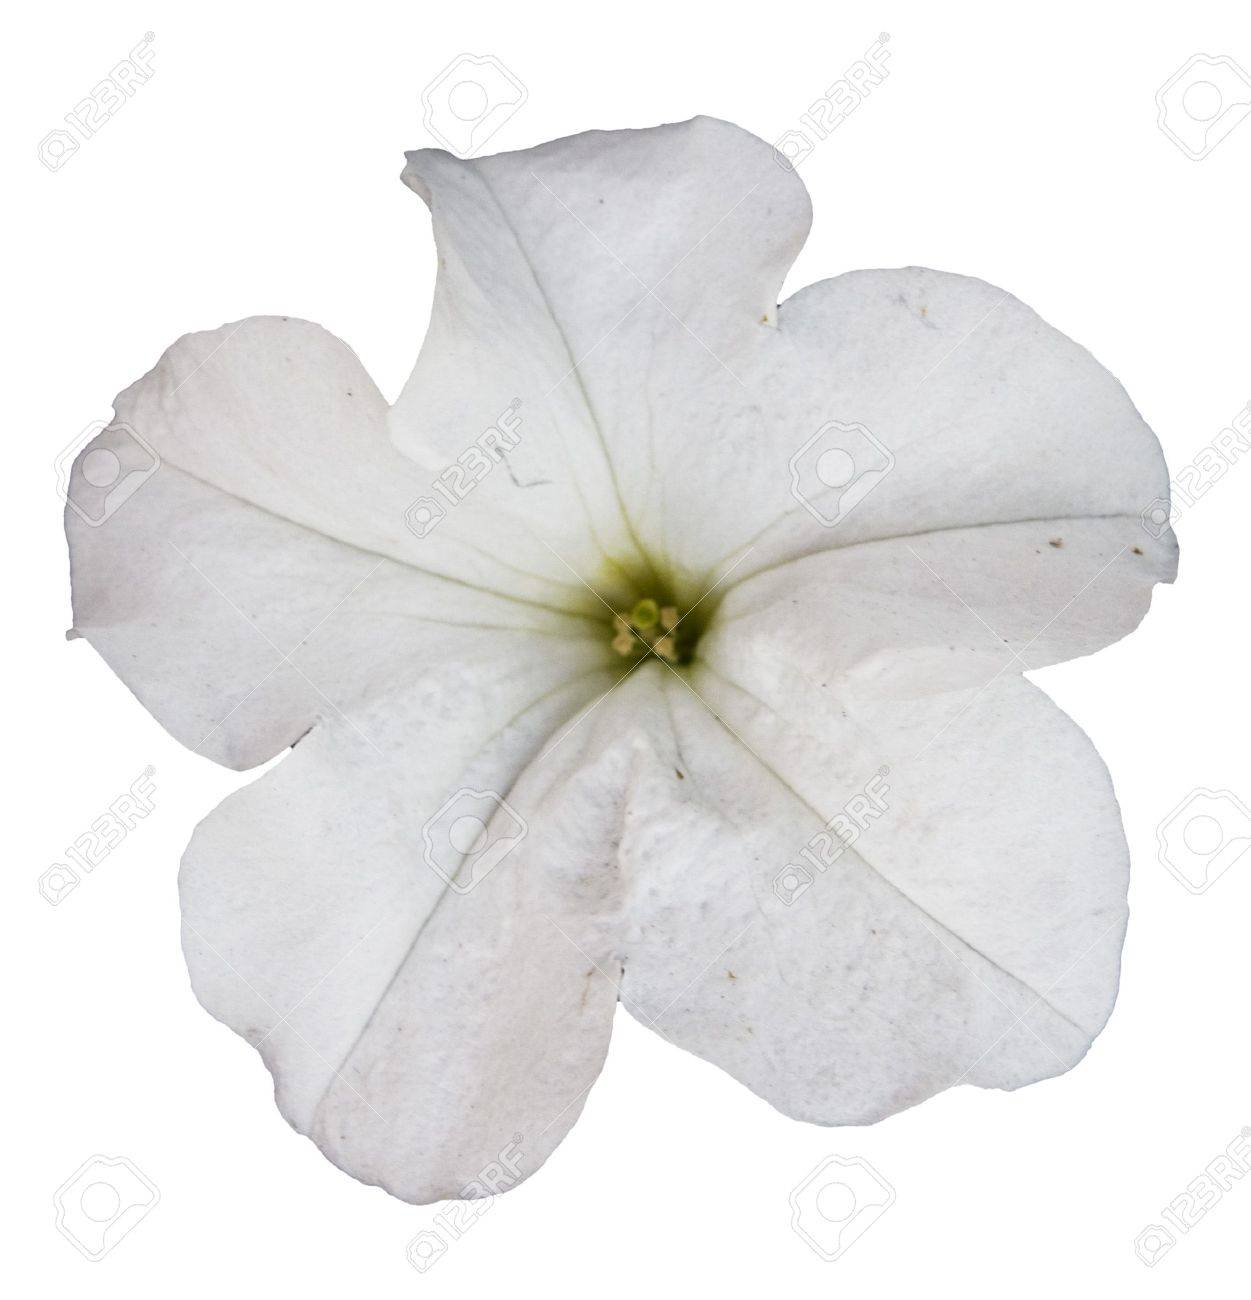 white petunia flower isolated over white background Stock Photo - 6036210